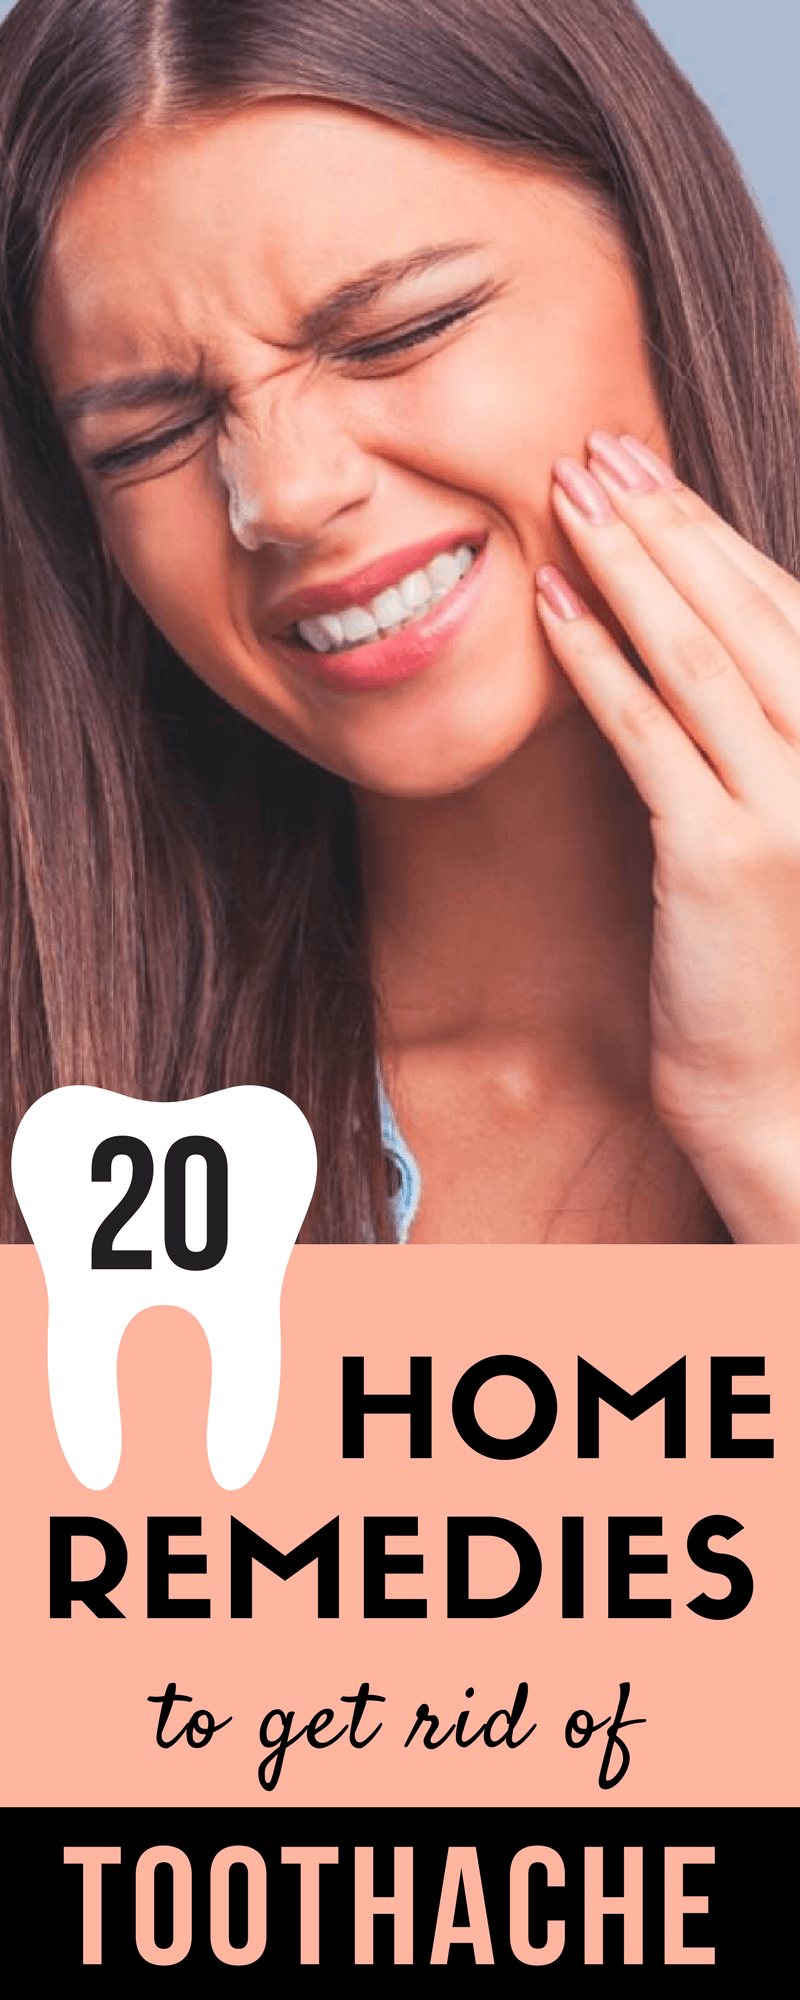 Easy Home Remedies To Get Rid Of Toothache That Actually Work